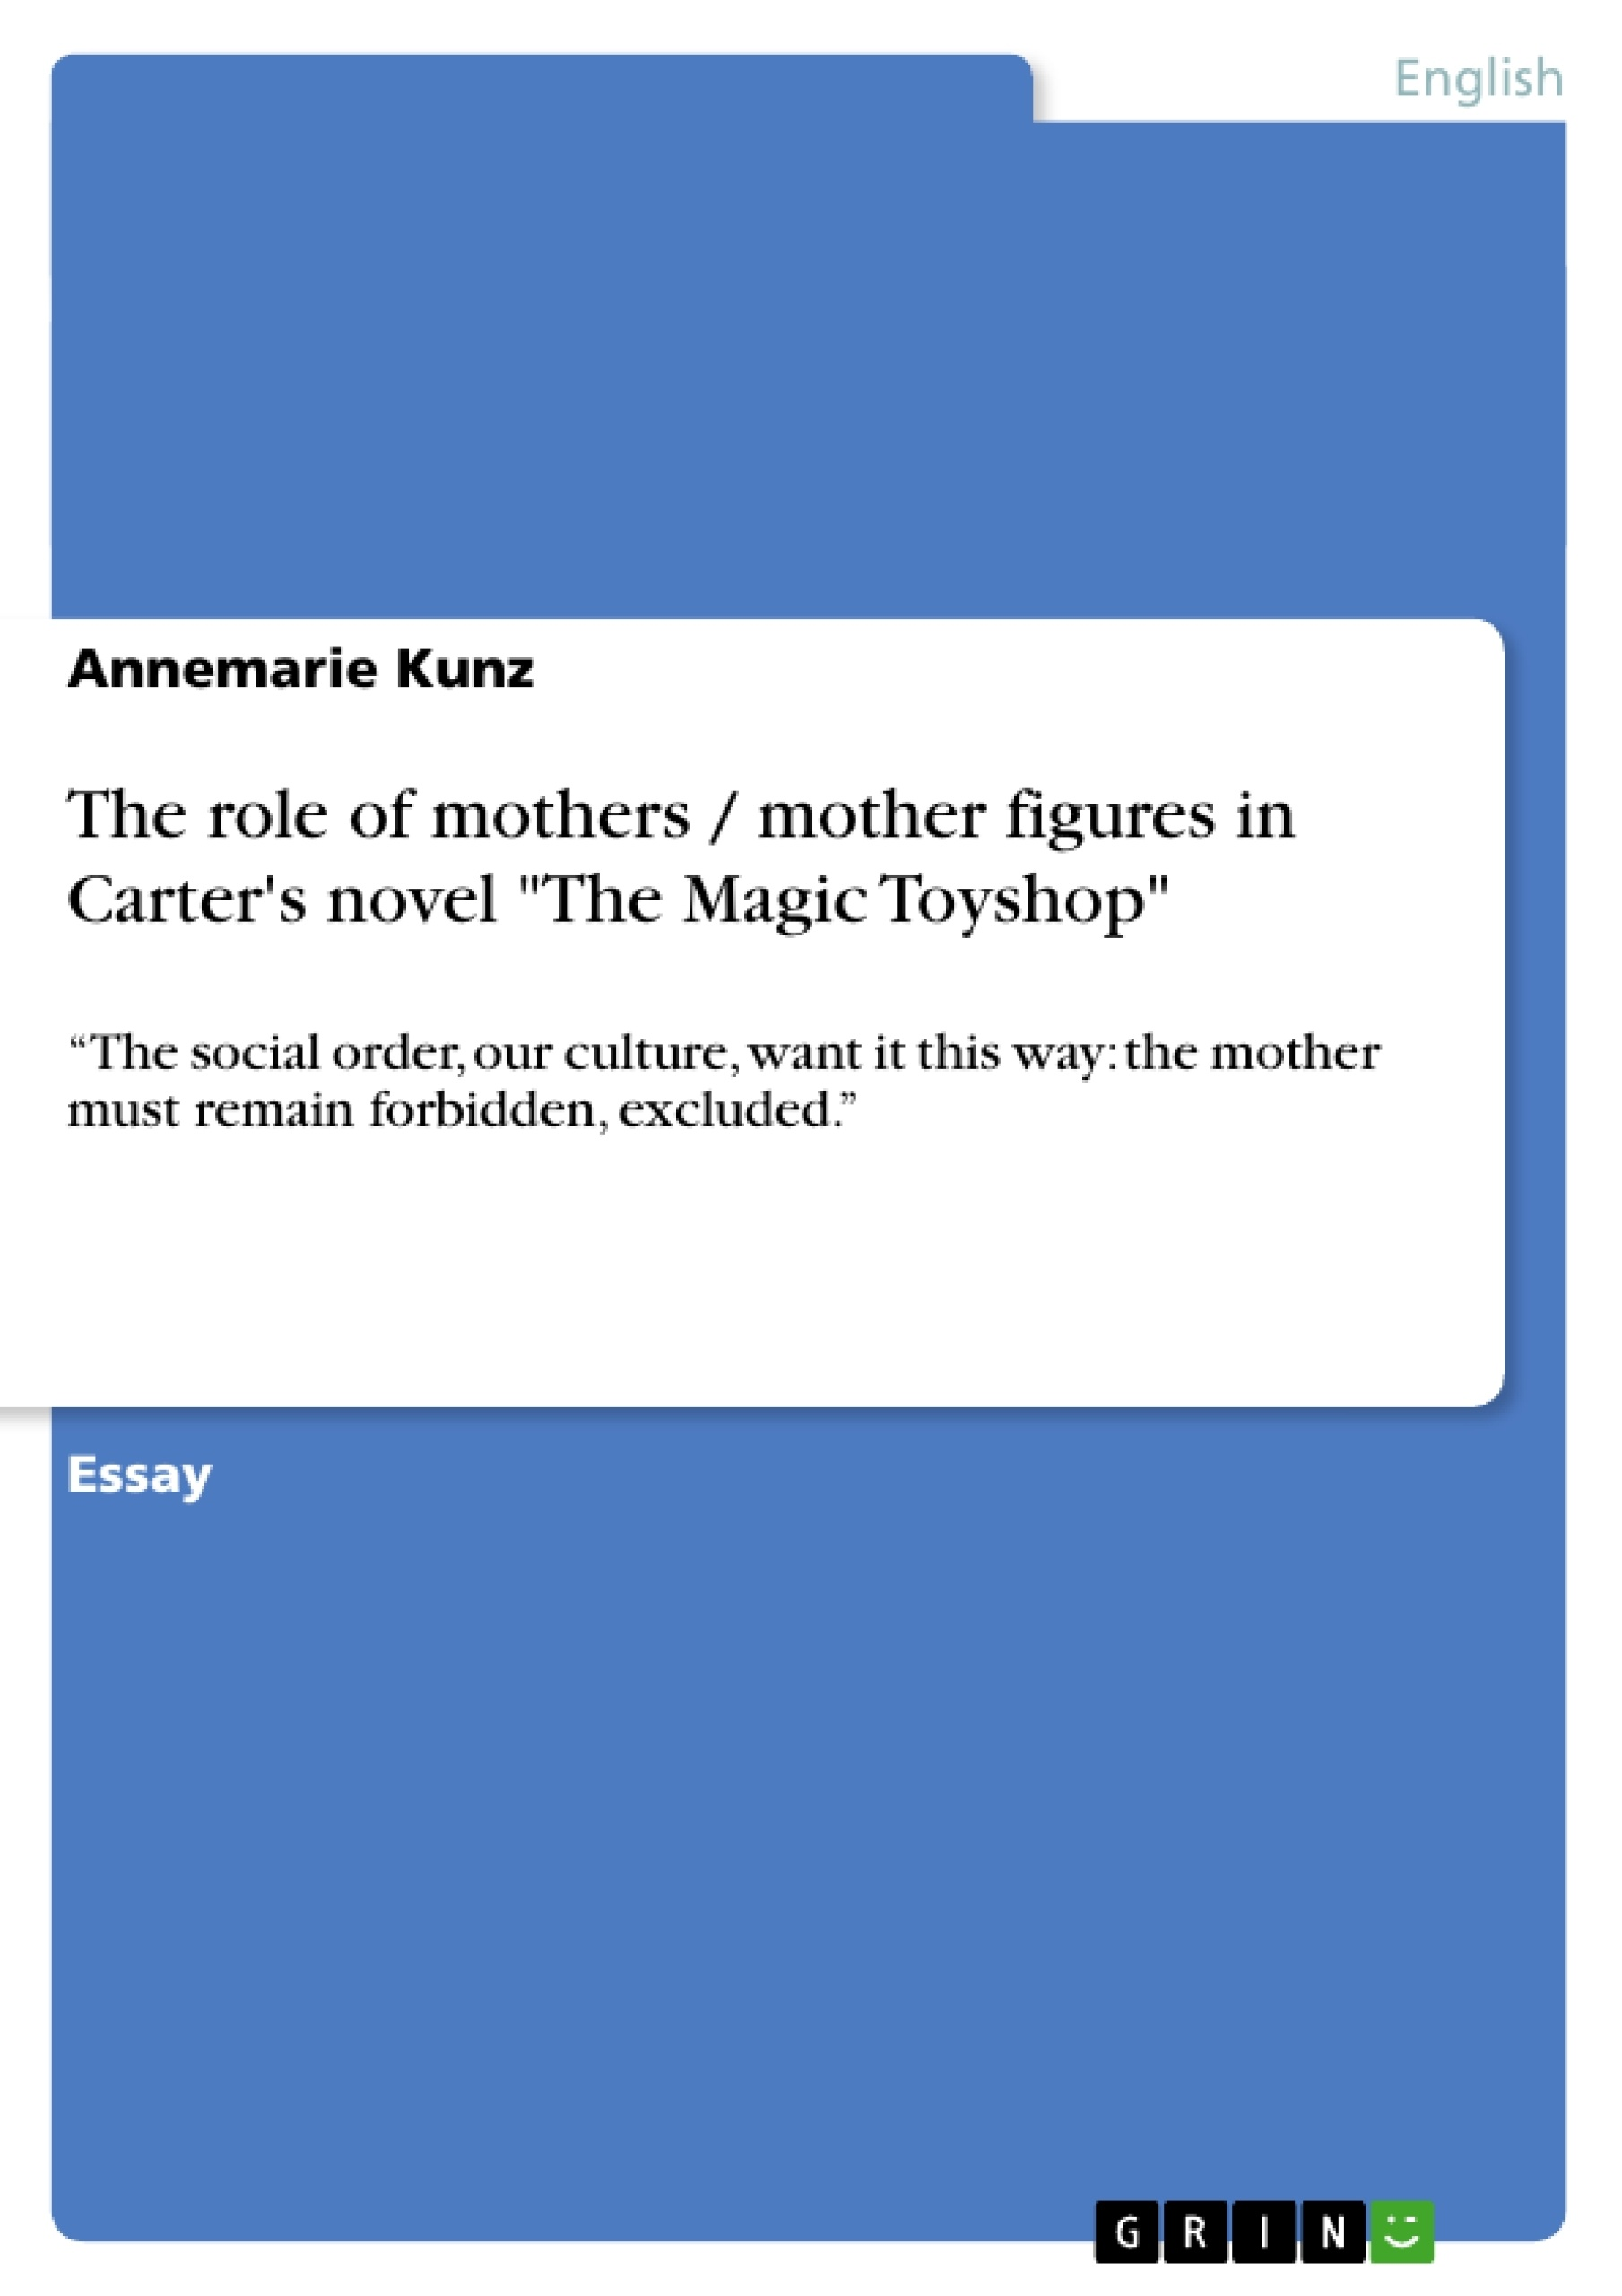 """Title: The role of mothers / mother figures in Carter's novel """"The Magic Toyshop"""""""